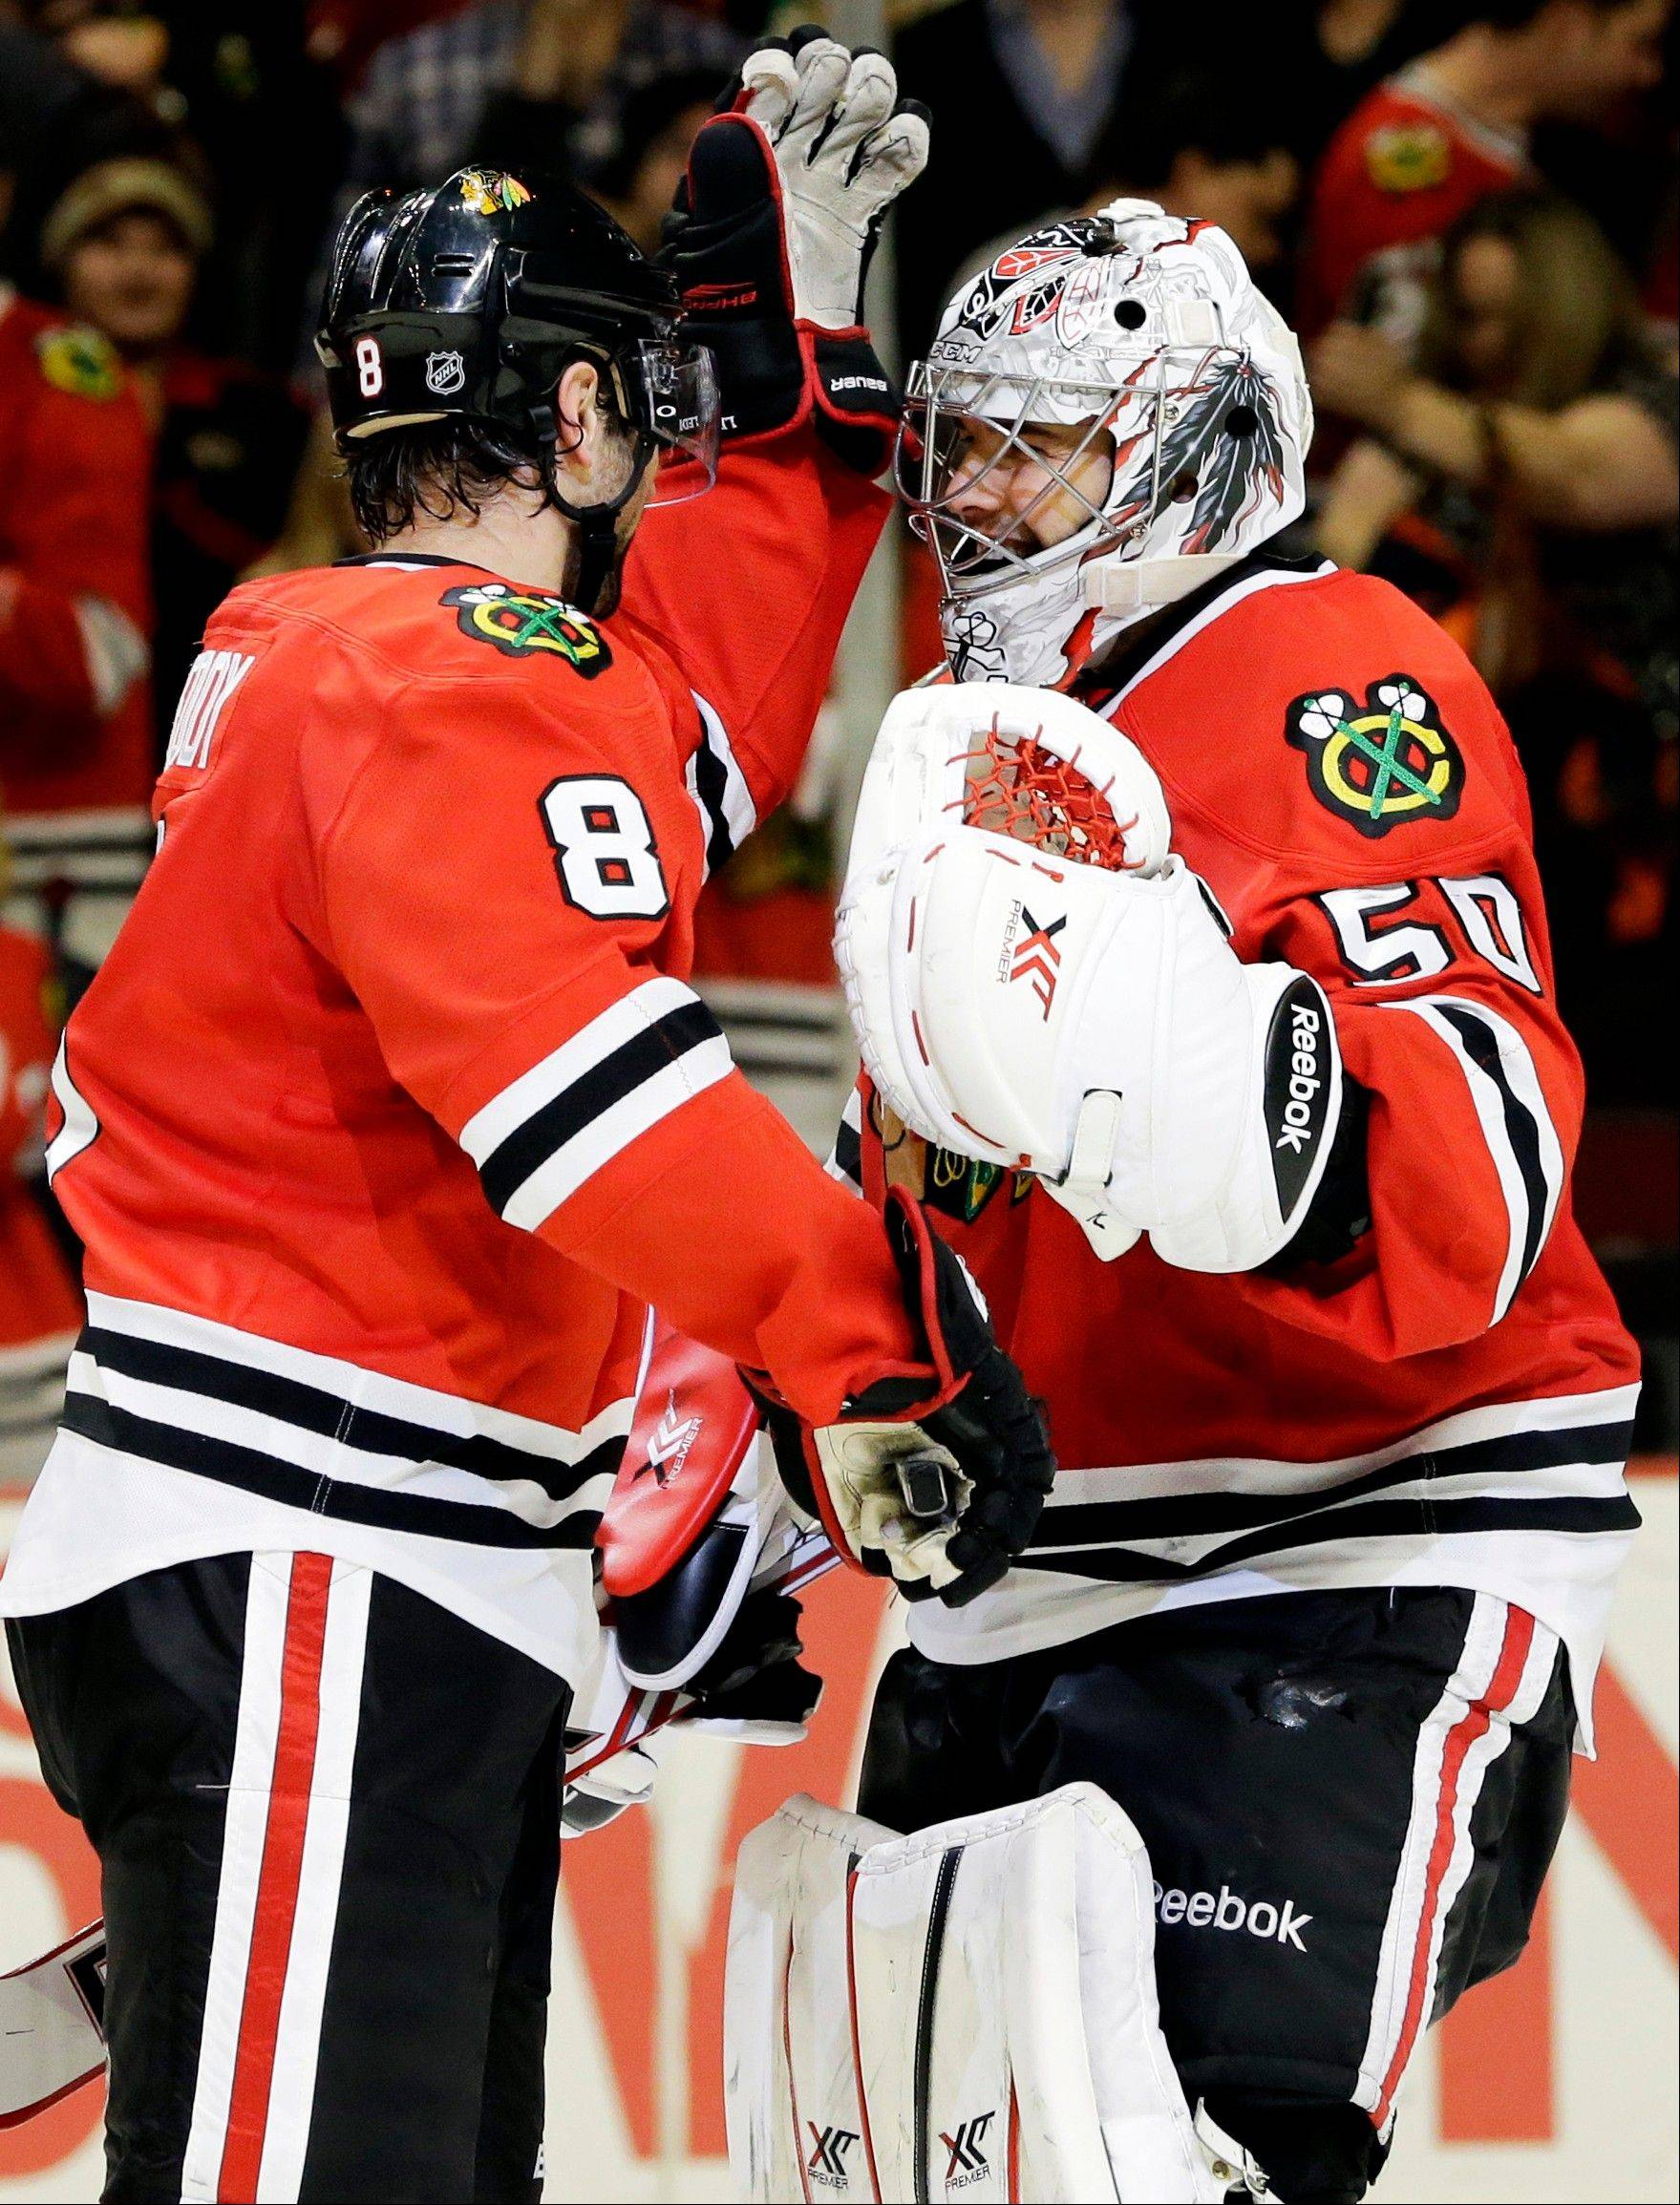 Associated Press The Blackhawks will go with goalie Corey Crawford, right, for Saturday's game, but head coach Joel Quenneville would not say if backup Nikolai Khabibulin will start Sunday's game.